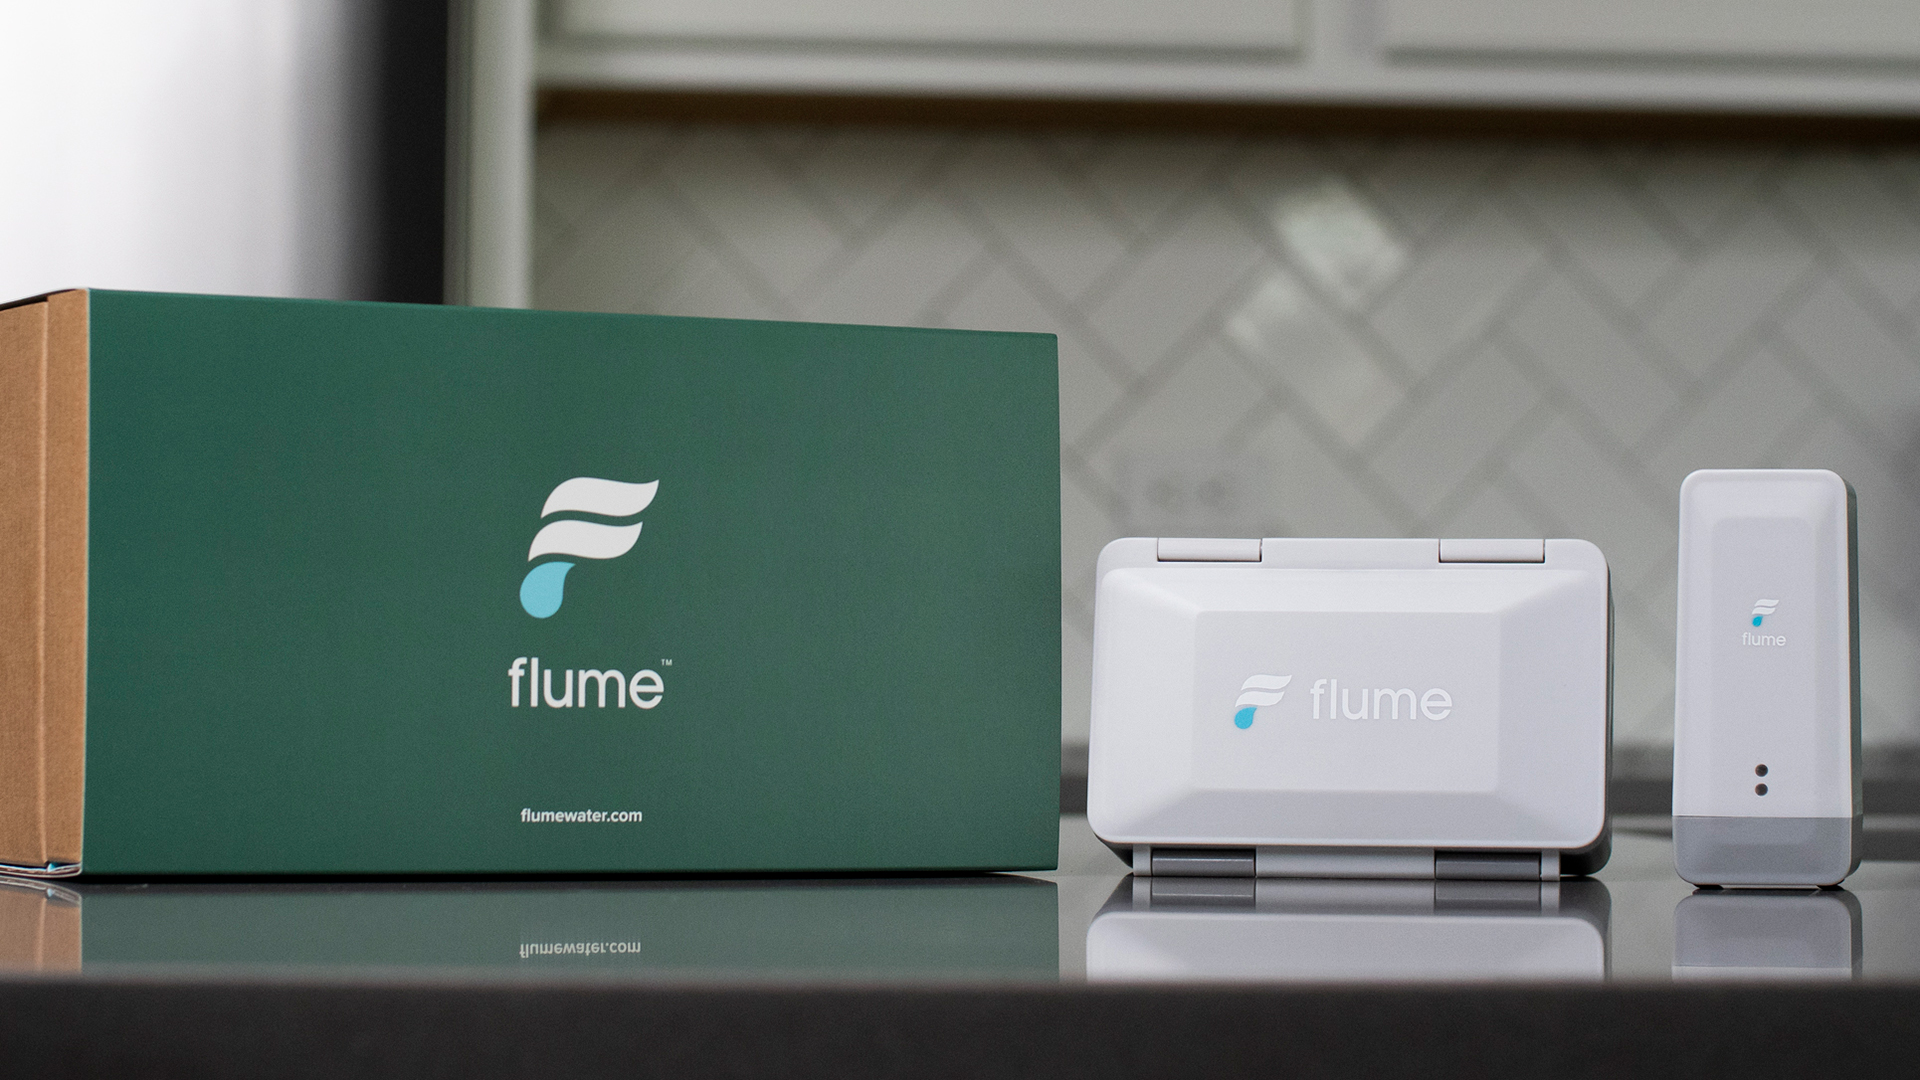 flume product